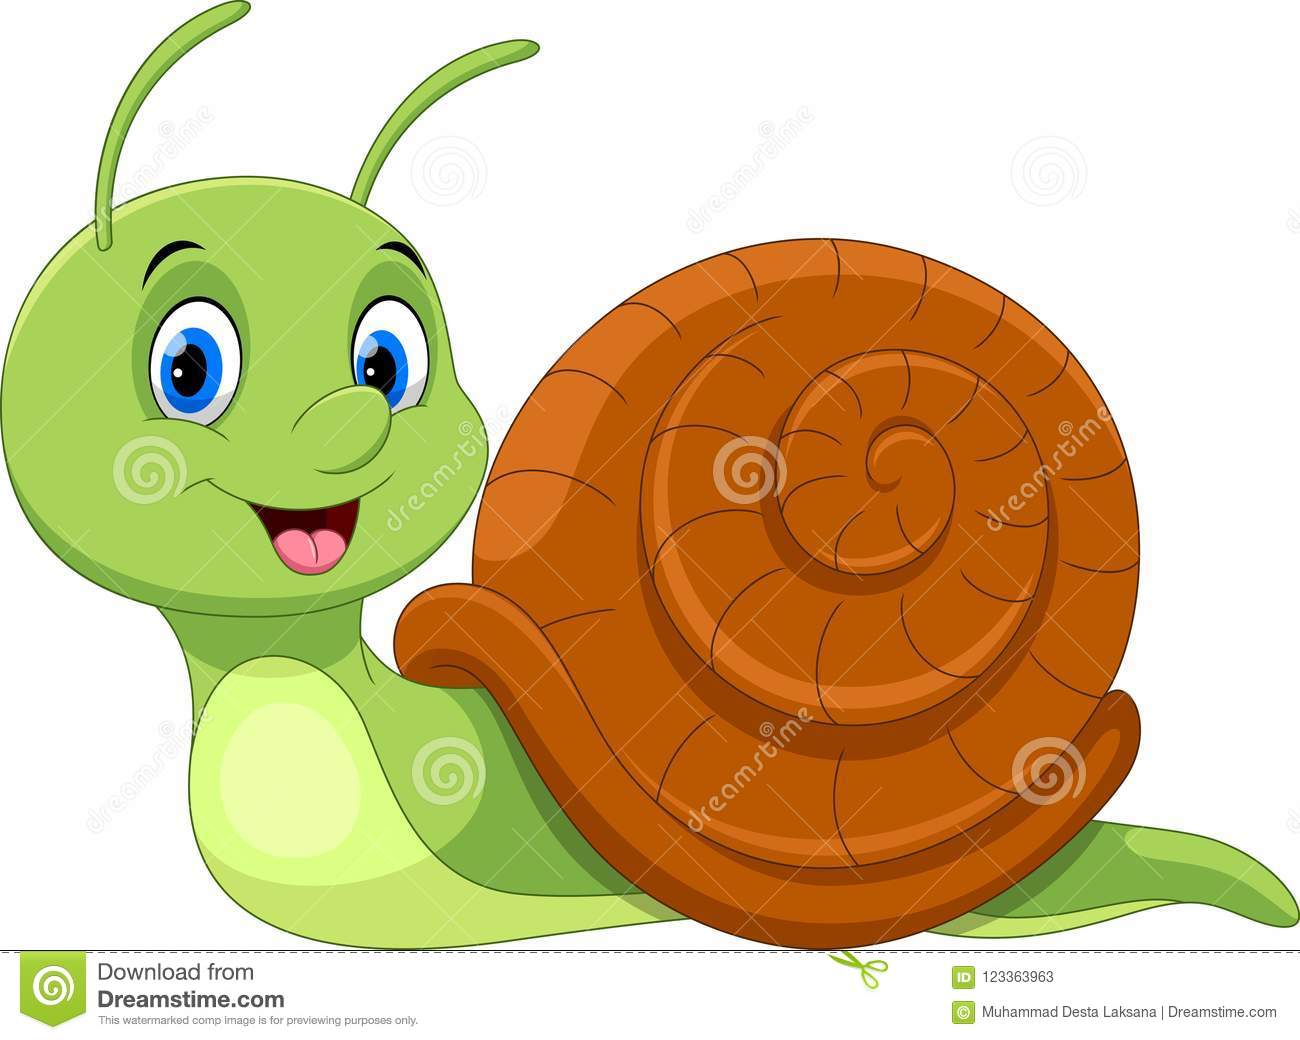 Cute Cartoon Snail. Funny And Adorable Stock Illustration